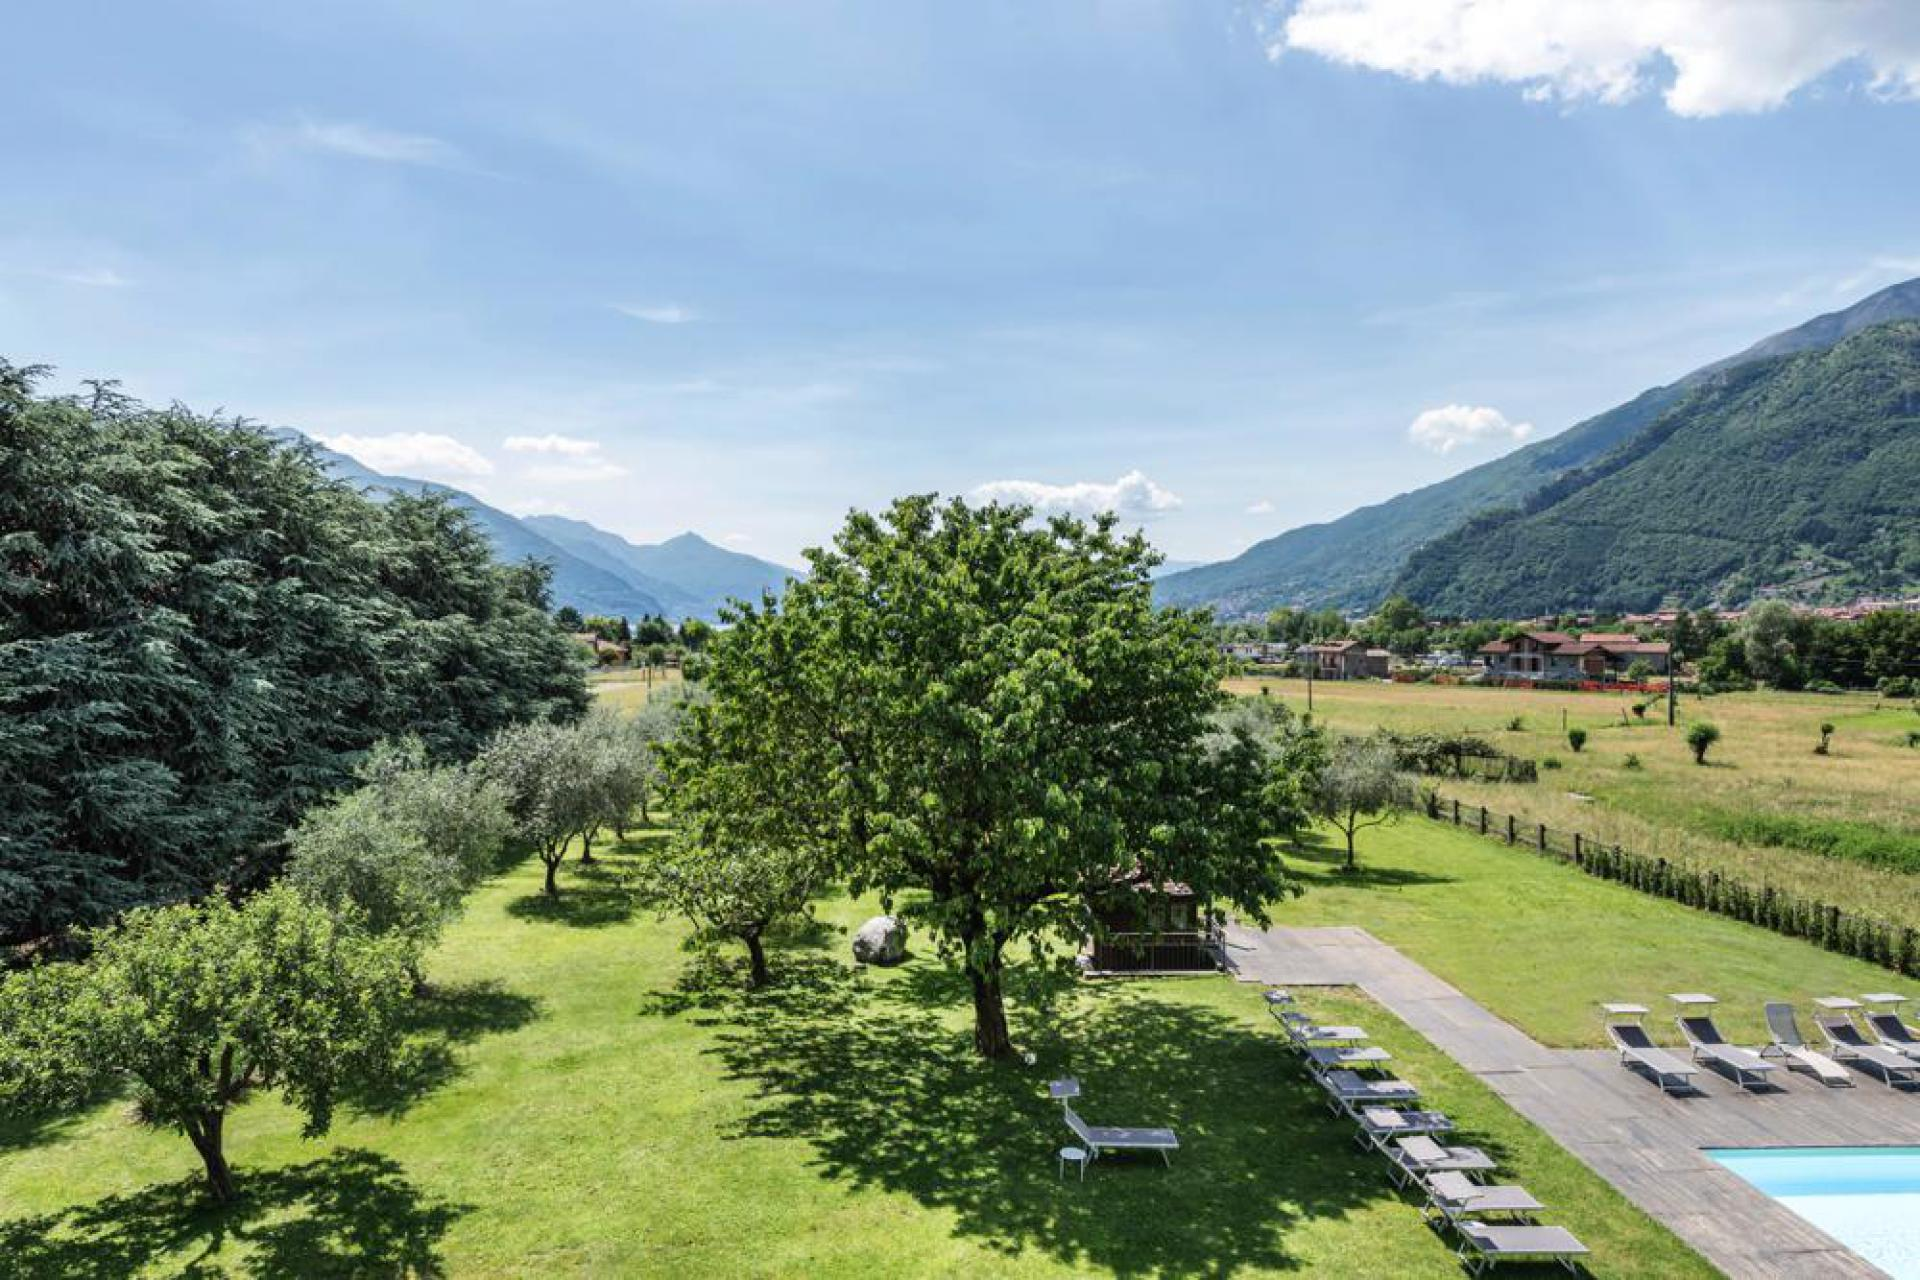 Agriturismo Lake Como and Lake Garda Charming agriturismo at walking distance of Lake Como